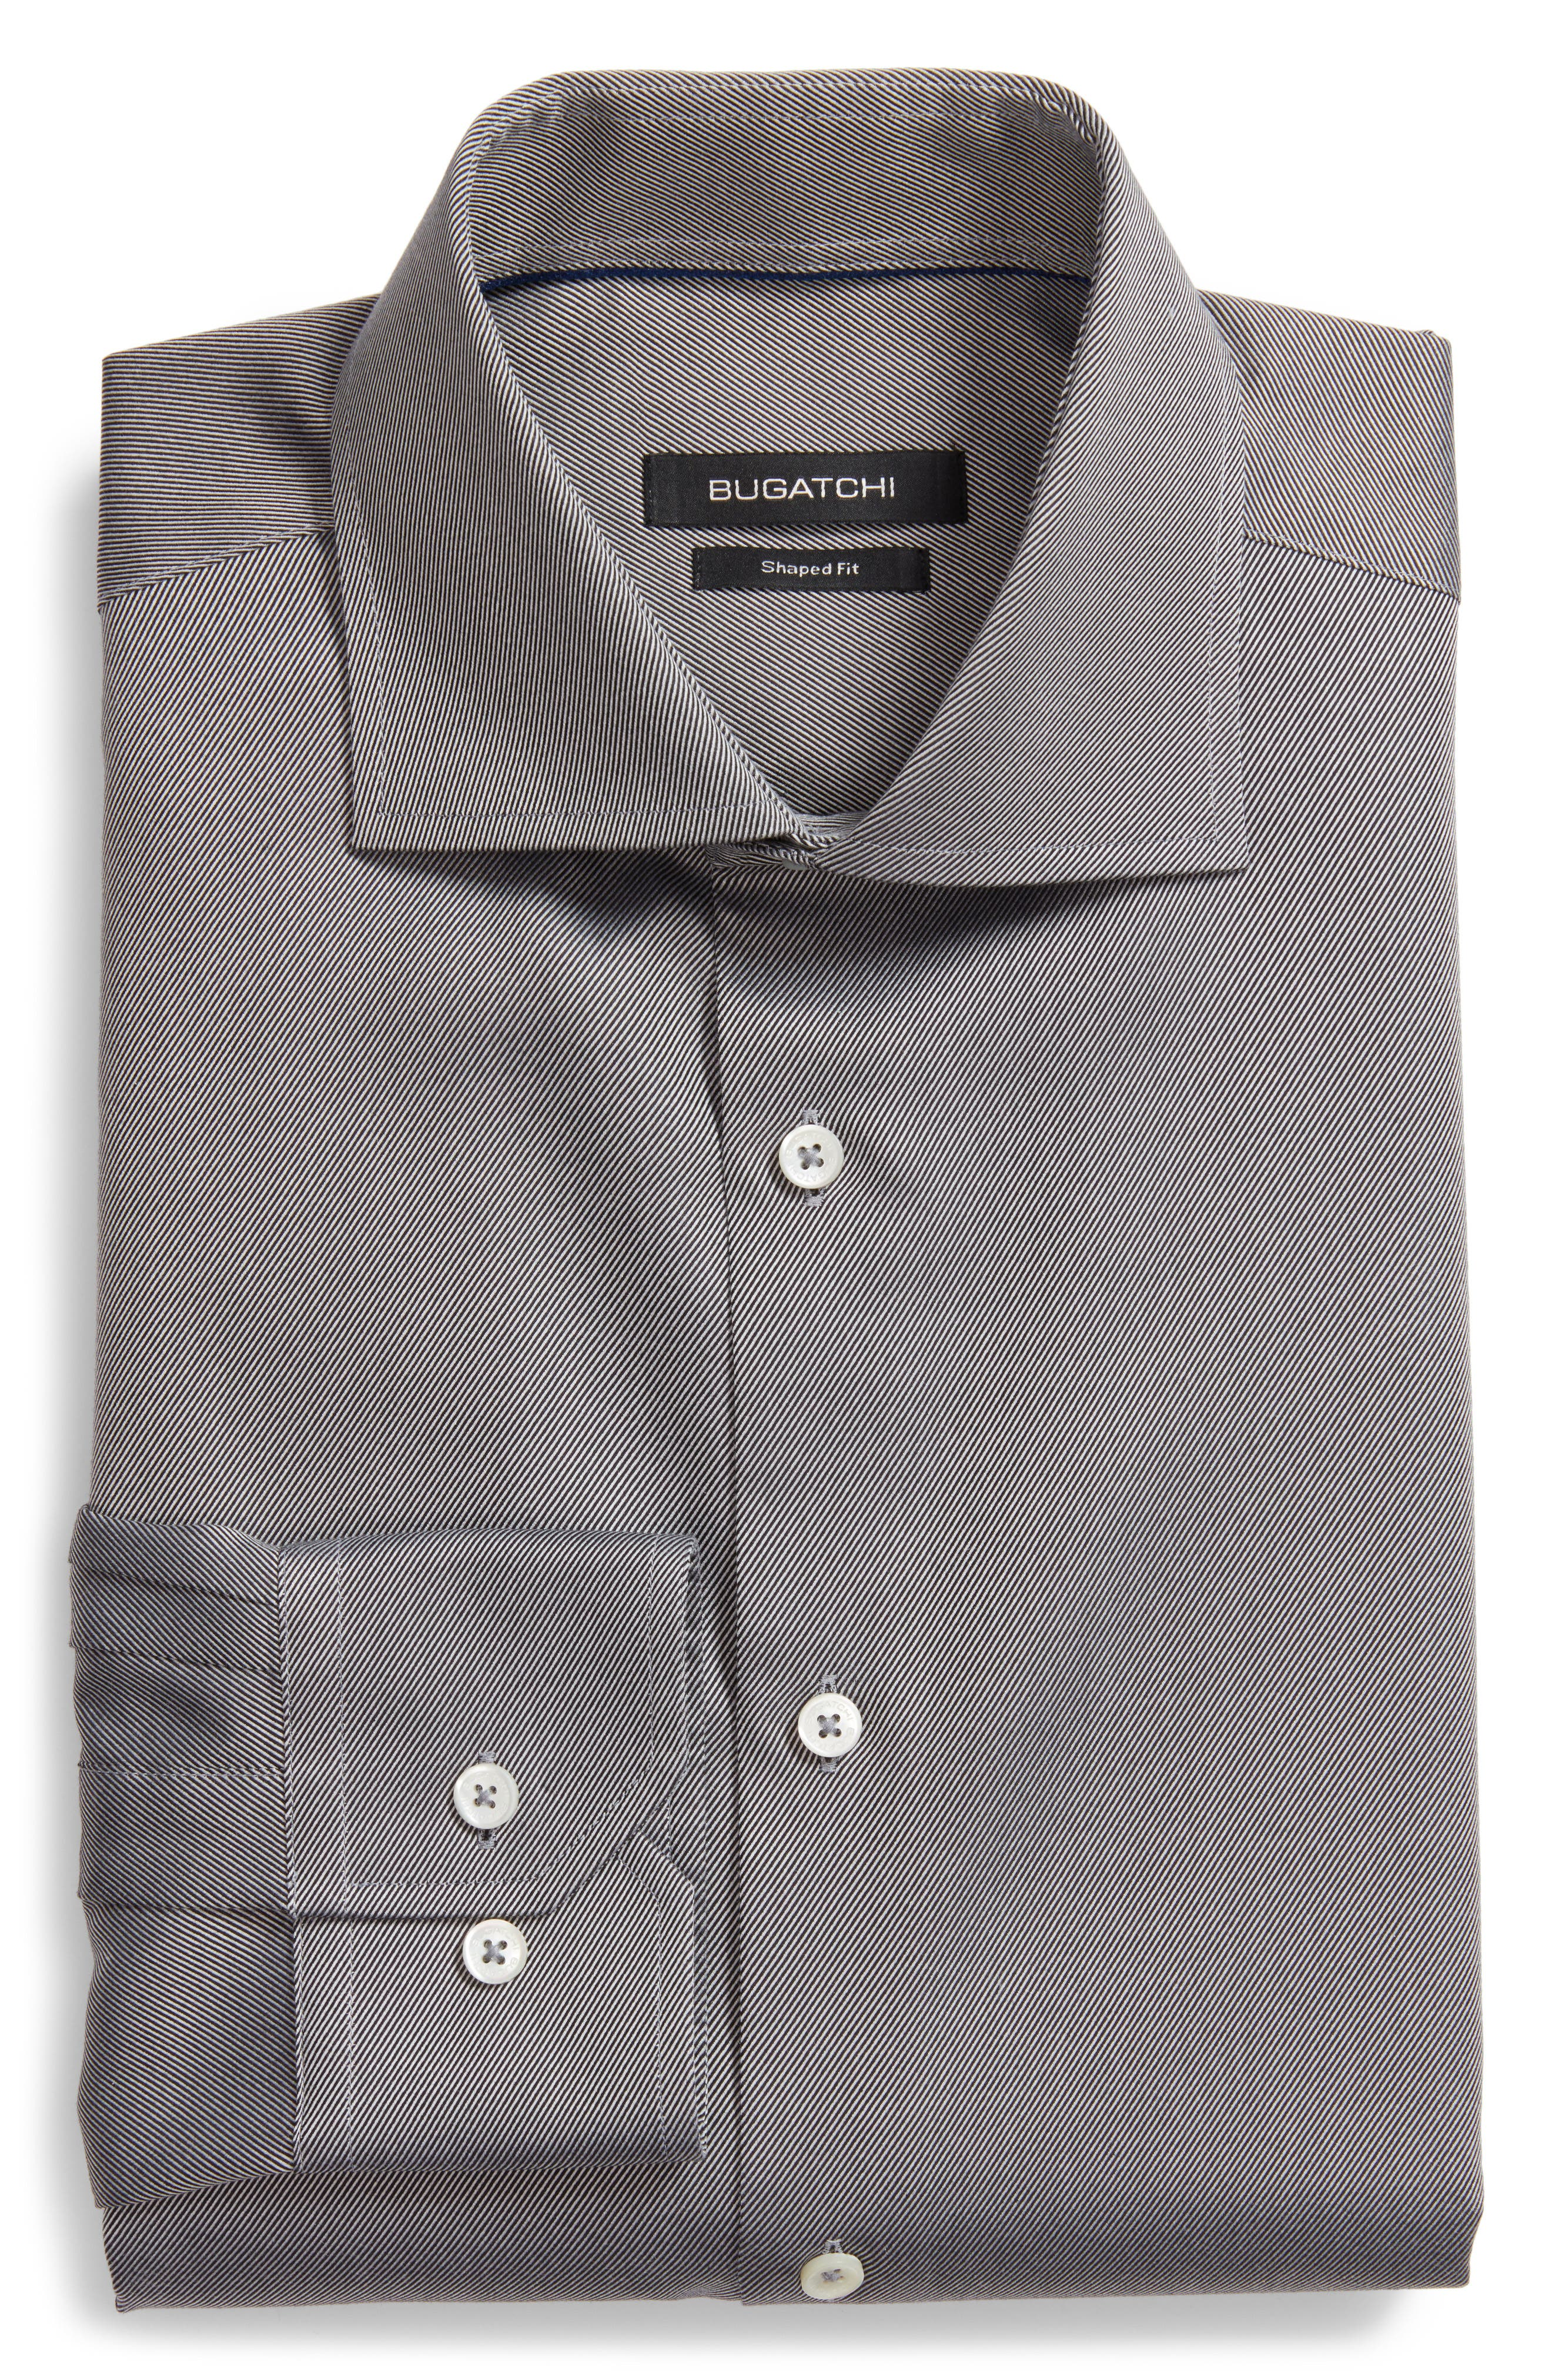 Shaped Fit Solid Dress Shirt,                         Main,                         color, 001